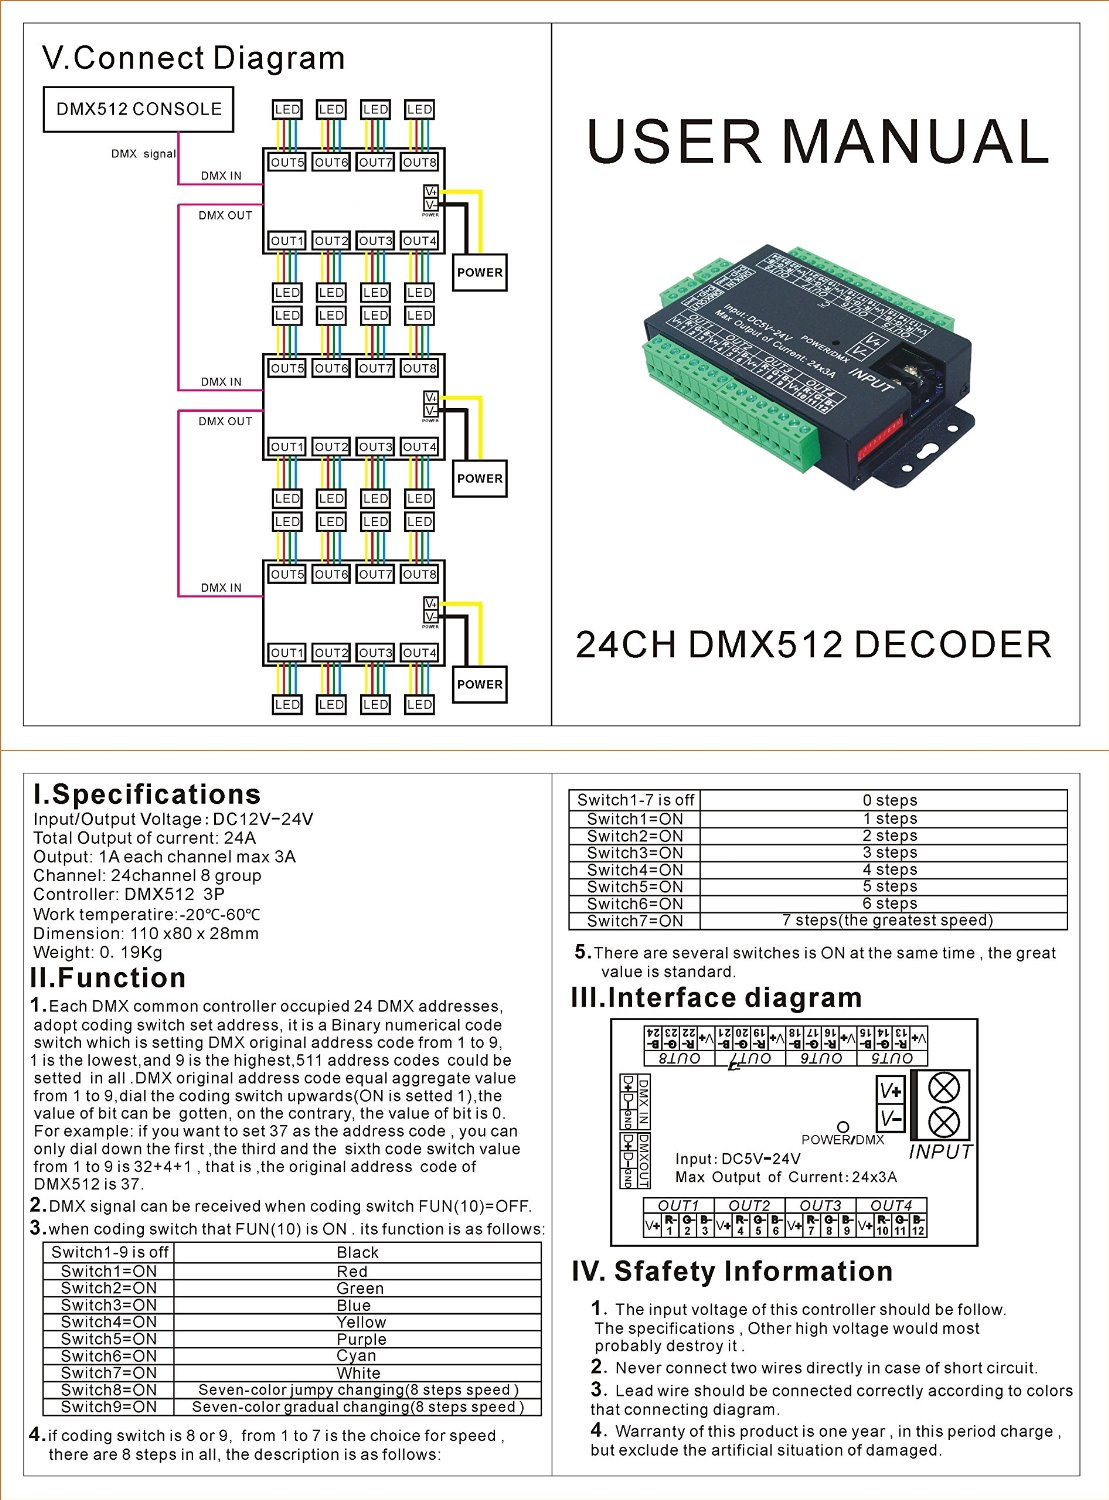 Dmx512 Decoder Wiring Diagram 29 Images Rgb Led Driver Circuit Diagramrgb Driverrgb Sl1500 Dc5 12 24v 24ch 8groupdmx512 Controller 24 Channel Dmx